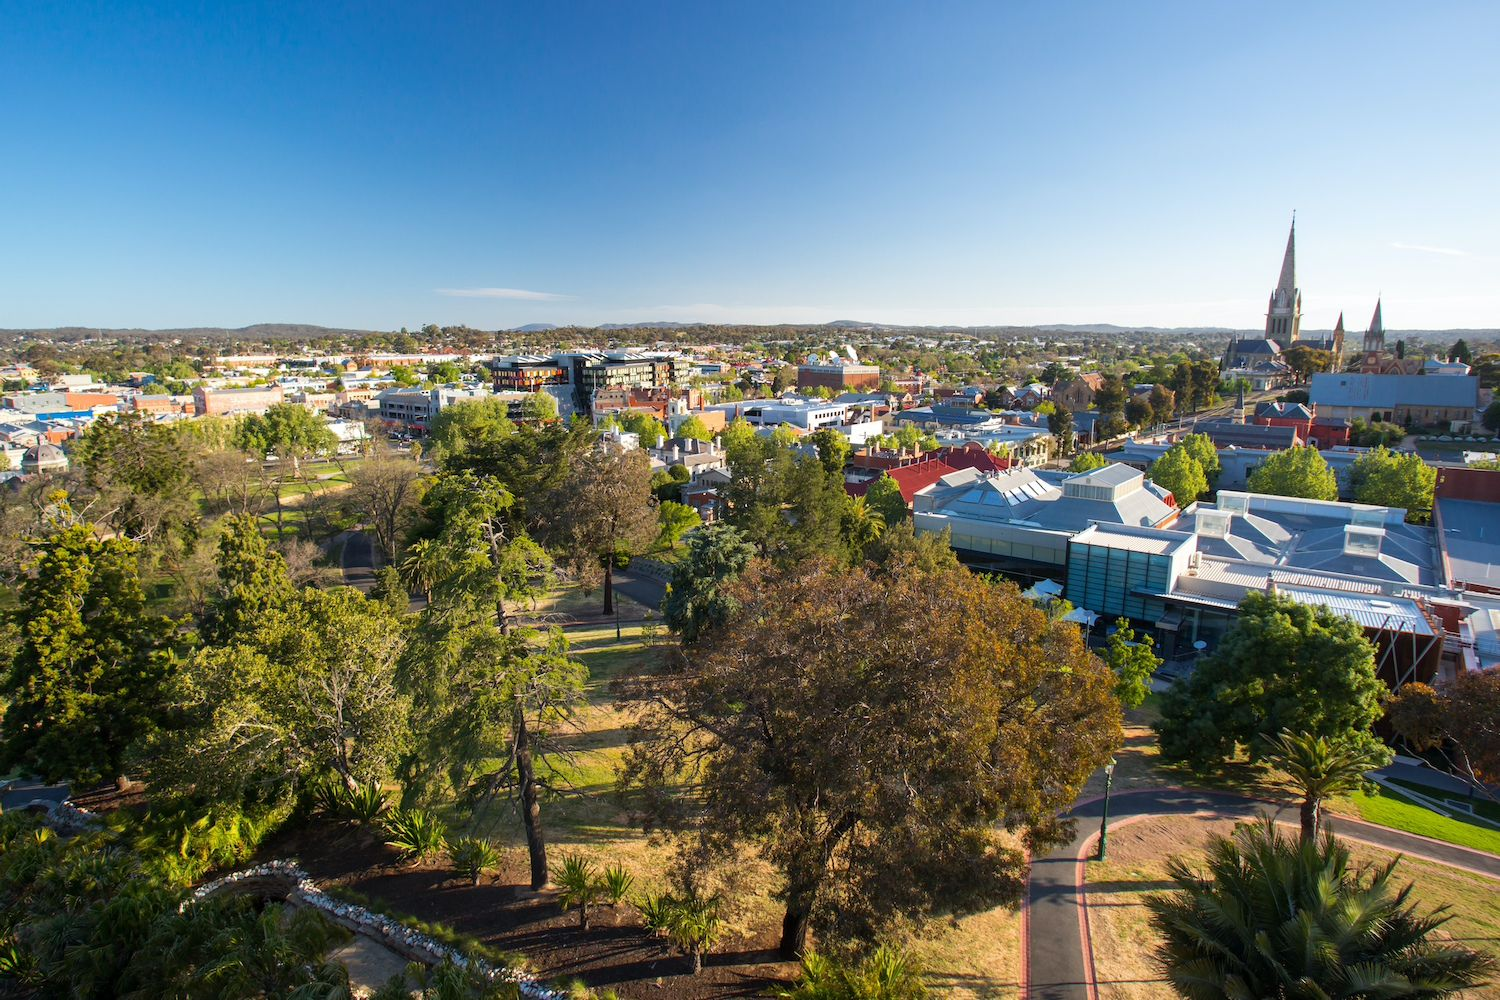 15 Best Things to Do in Bendigo, Australia